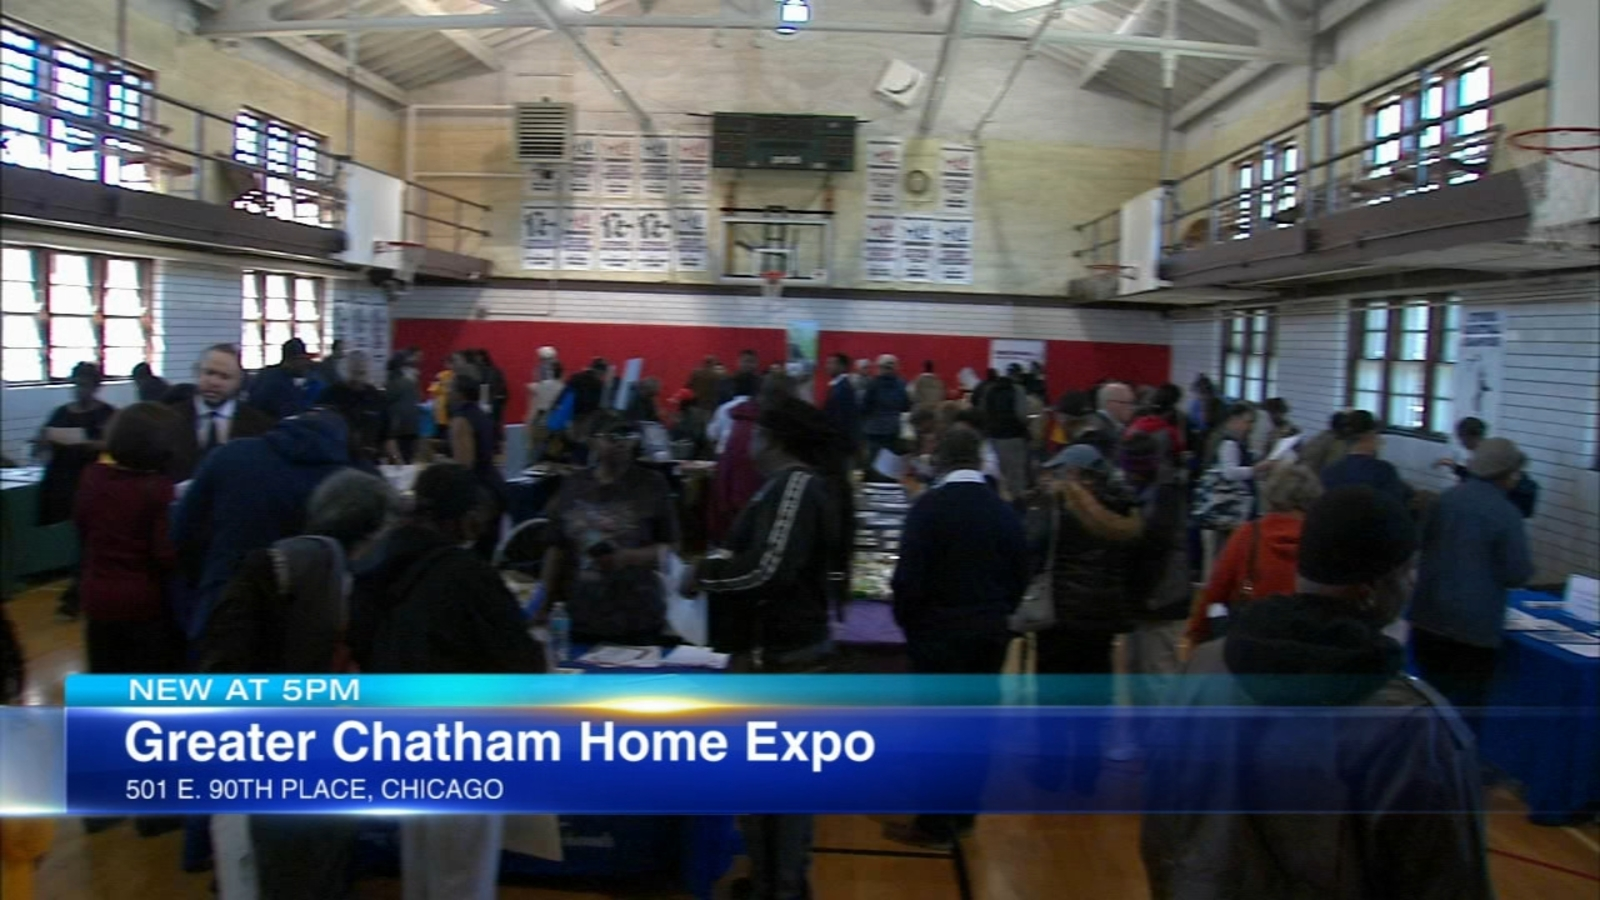 Chatham Home Expo inspires home improvement